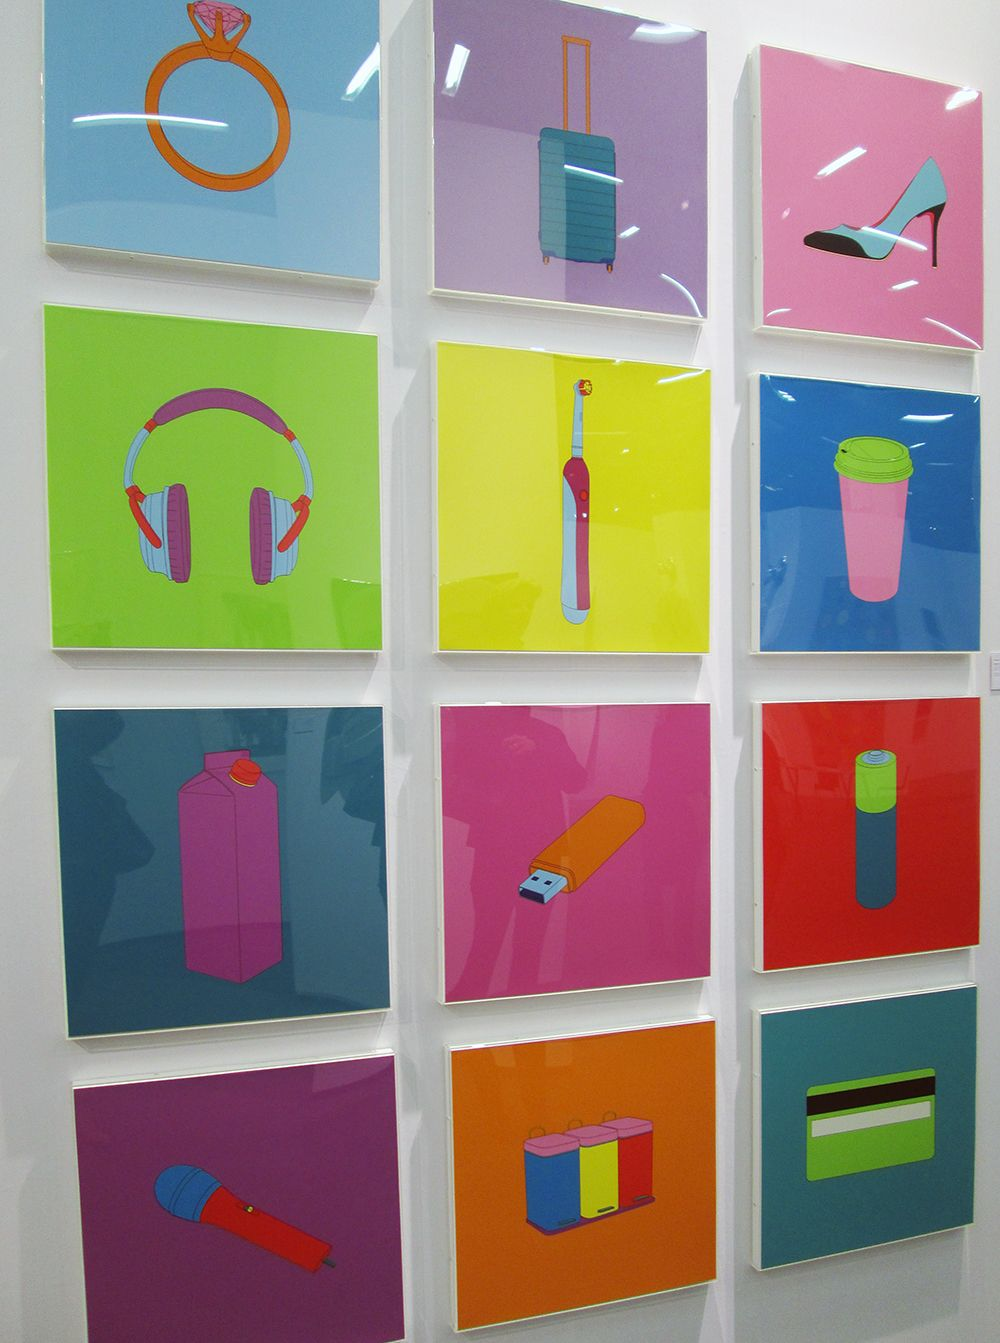 Michael Craig-Martin, Objects of our Time, 2014